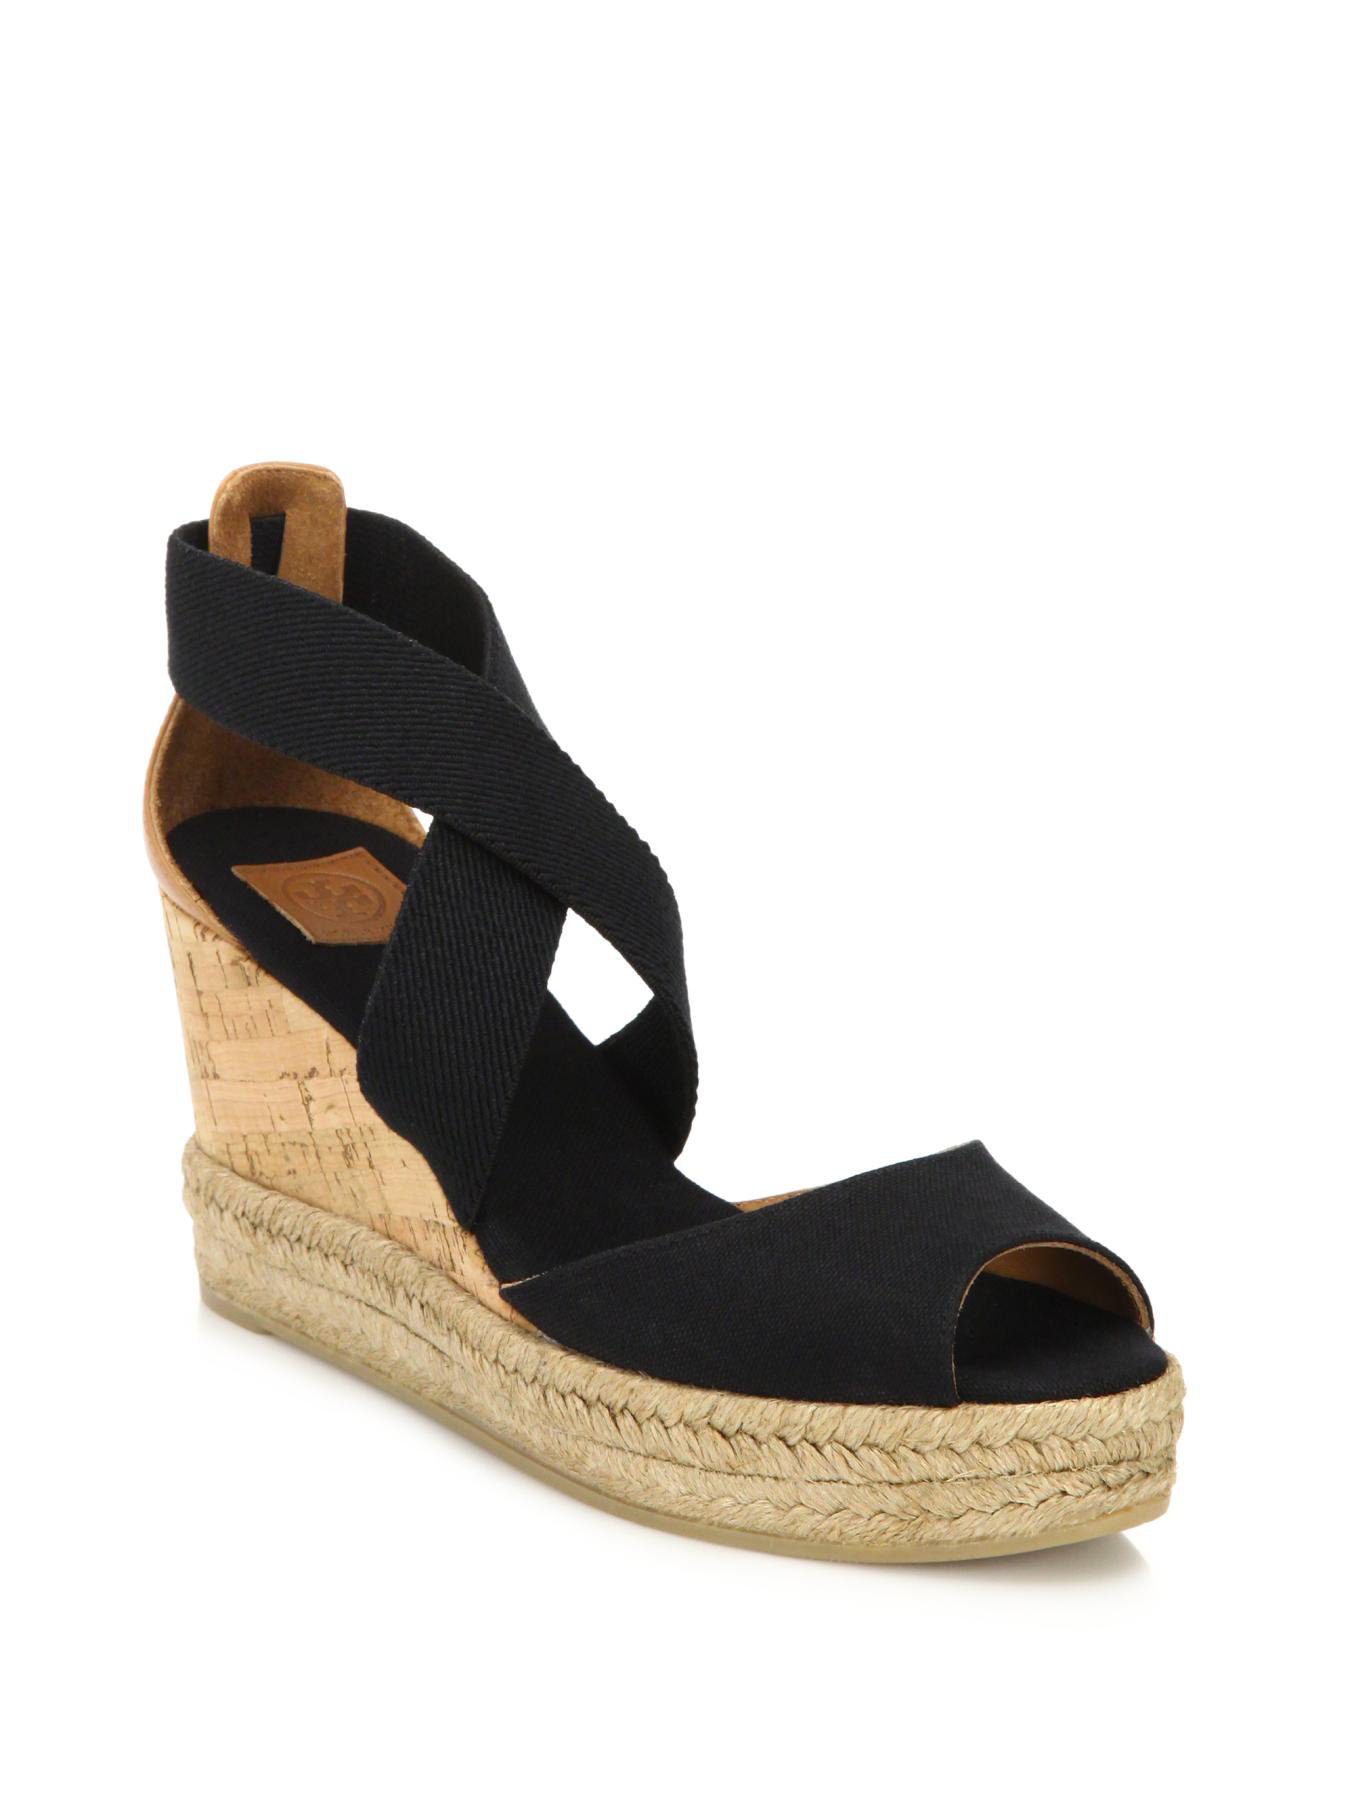 8e9155ef1 Lyst - Tory Burch Canvas   Cork Espadrille Wedge Sandals in Black